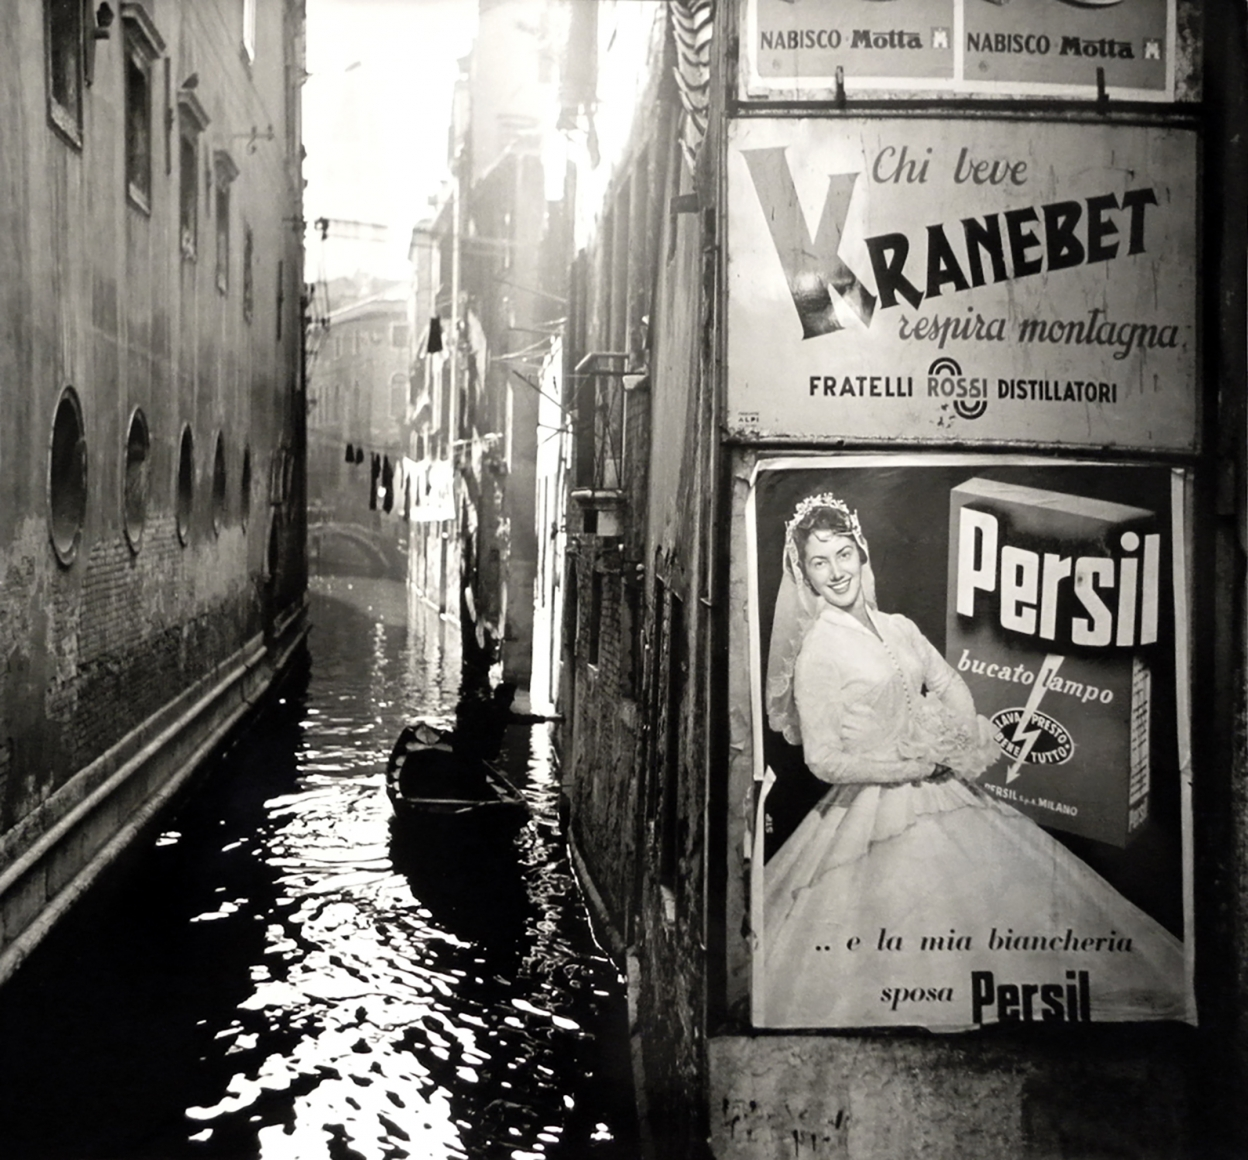 Nino Migliori, Venice, 1958. A canal with one boat running between buildings. Advertisements on the right.